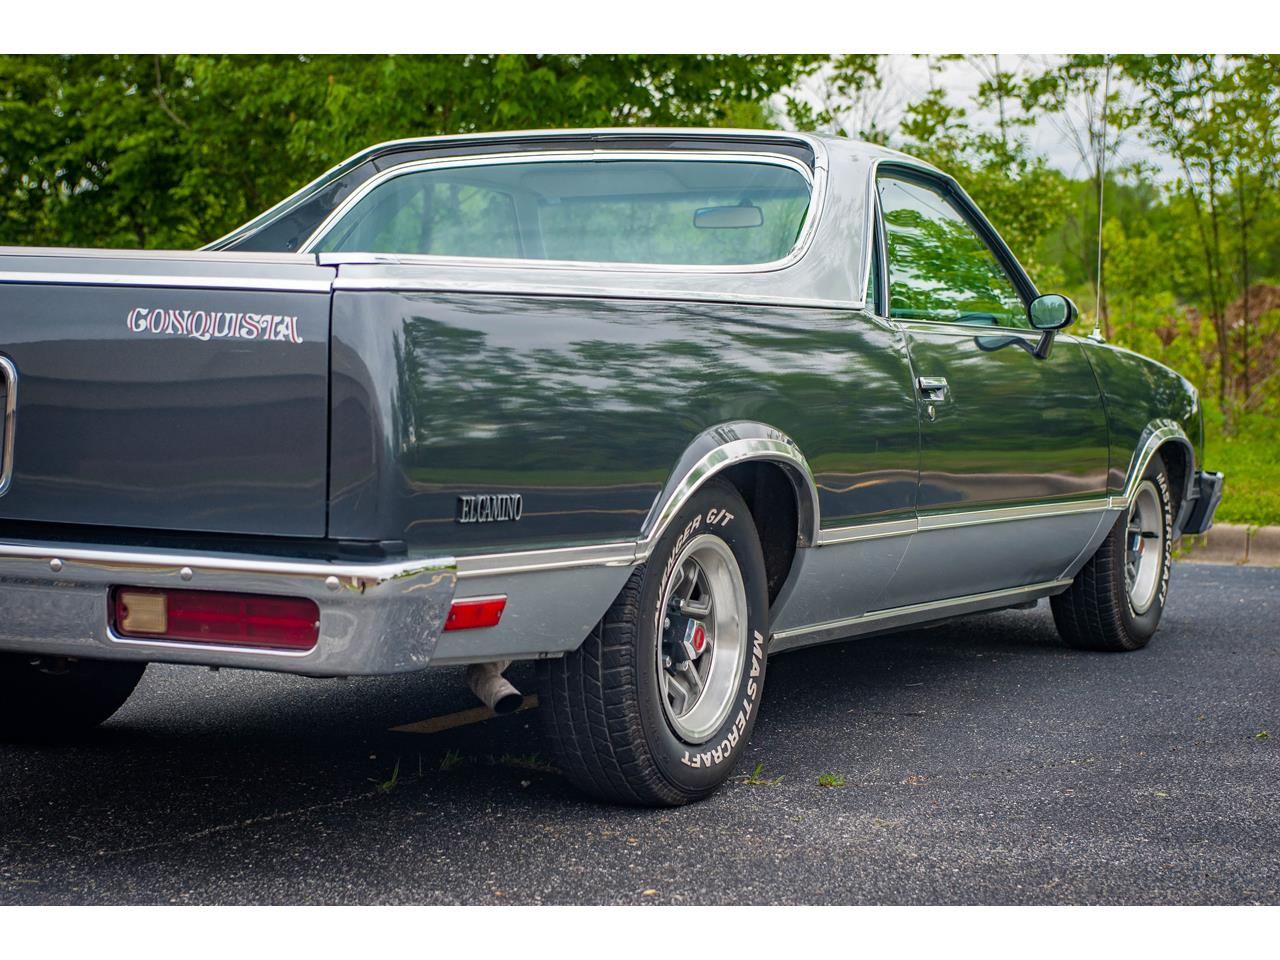 Large Picture of 1982 El Camino - $13,000.00 Offered by Gateway Classic Cars - St. Louis - QB9A